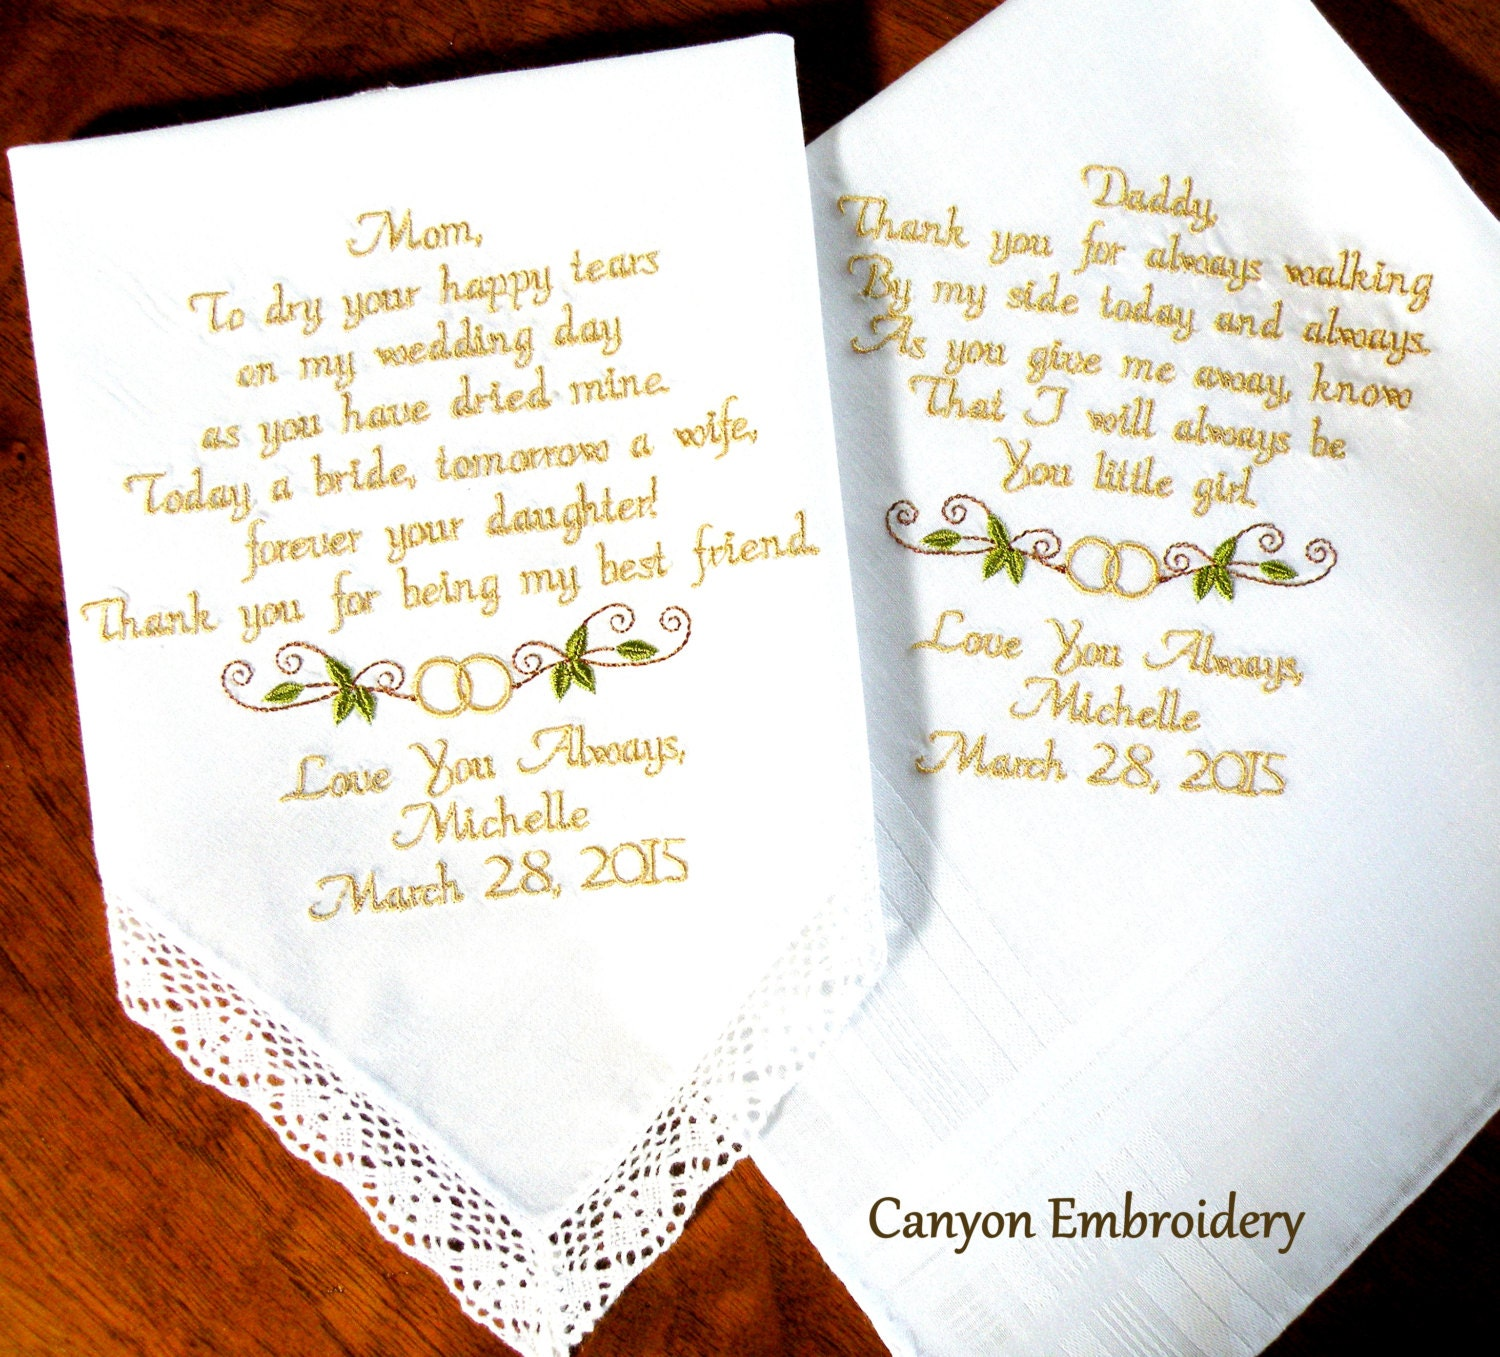 Wedding Gifts For Parents Handkerchief : ... with Wedding Rings Design Wedding Handkerchief, Gift for Parents